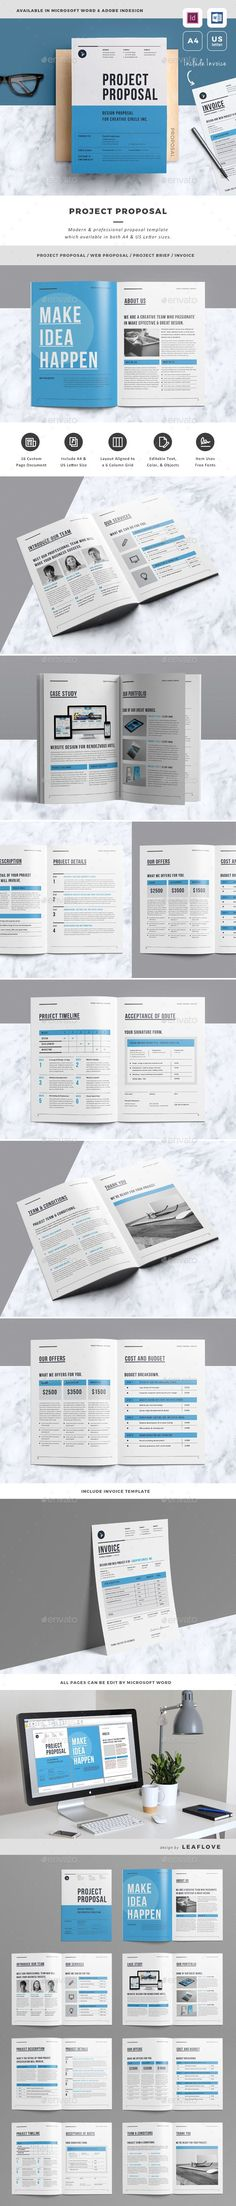 Cover Preview Download Here https\/\/graphicrivernet\/item\/project - best proposal templates